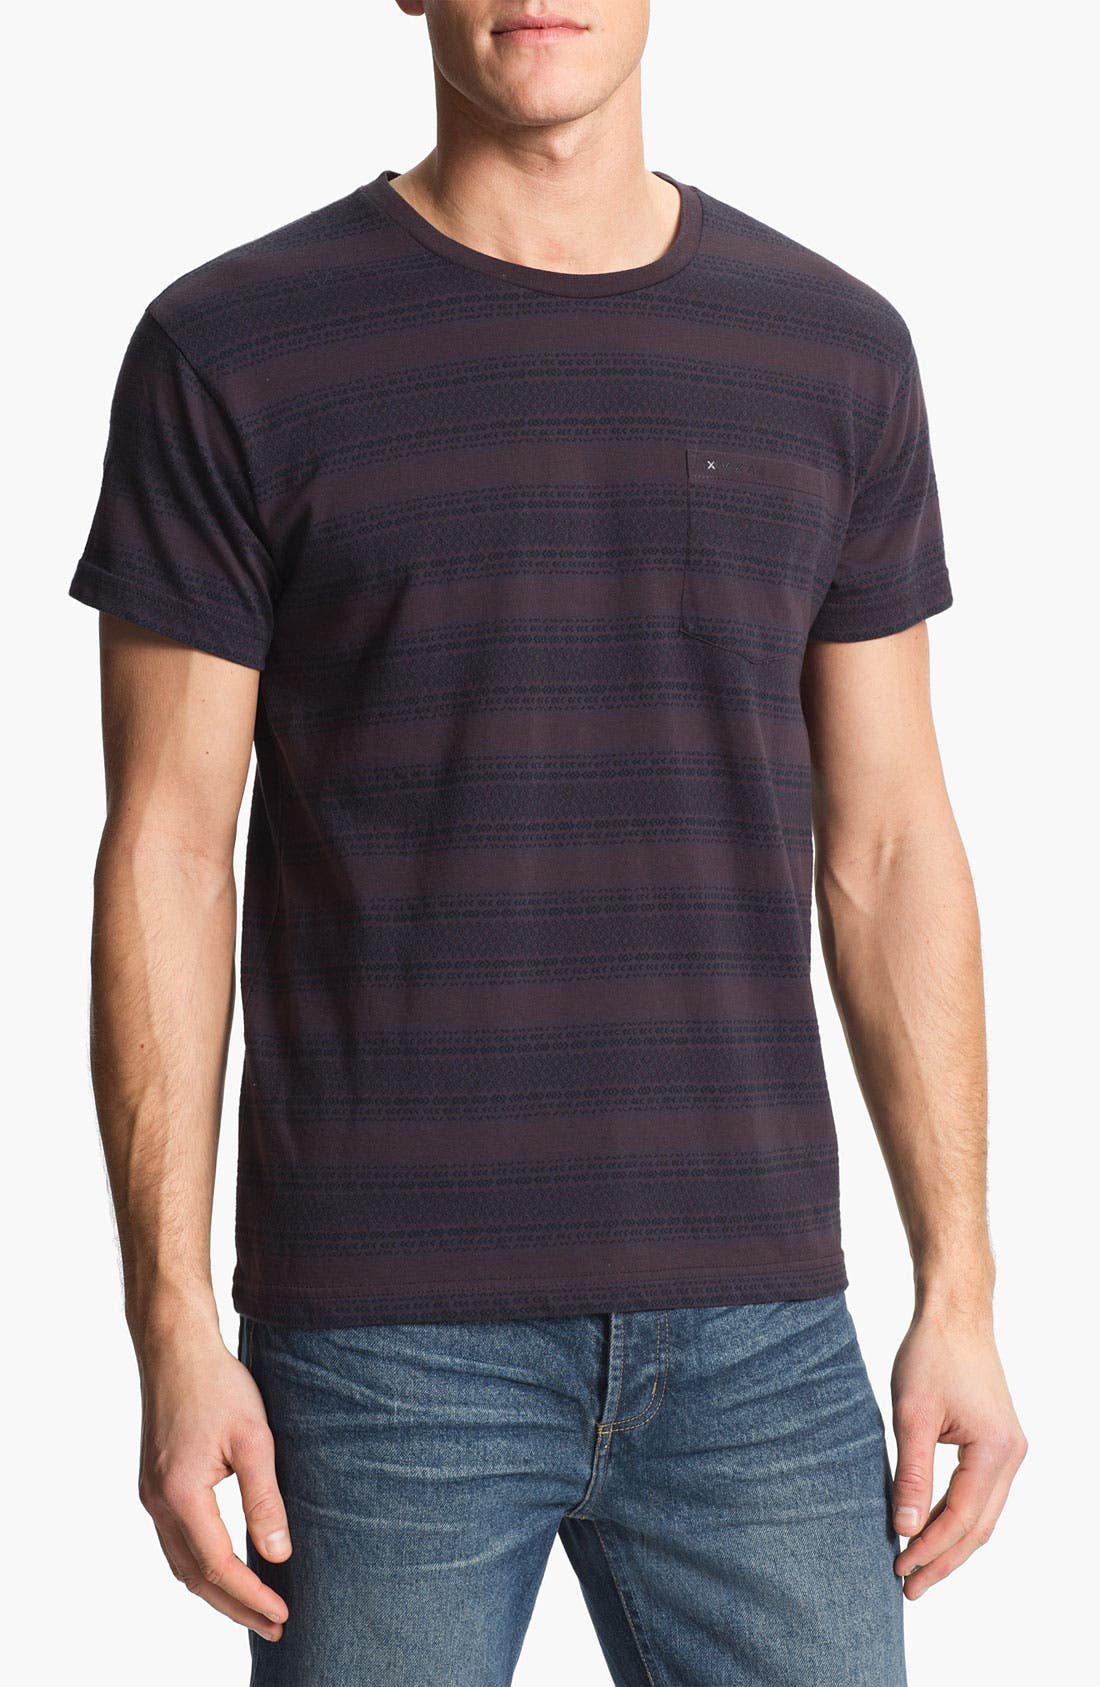 Alternate Image 1 Selected - RVCA 'Shaman' Stripe Crewneck T-Shirt